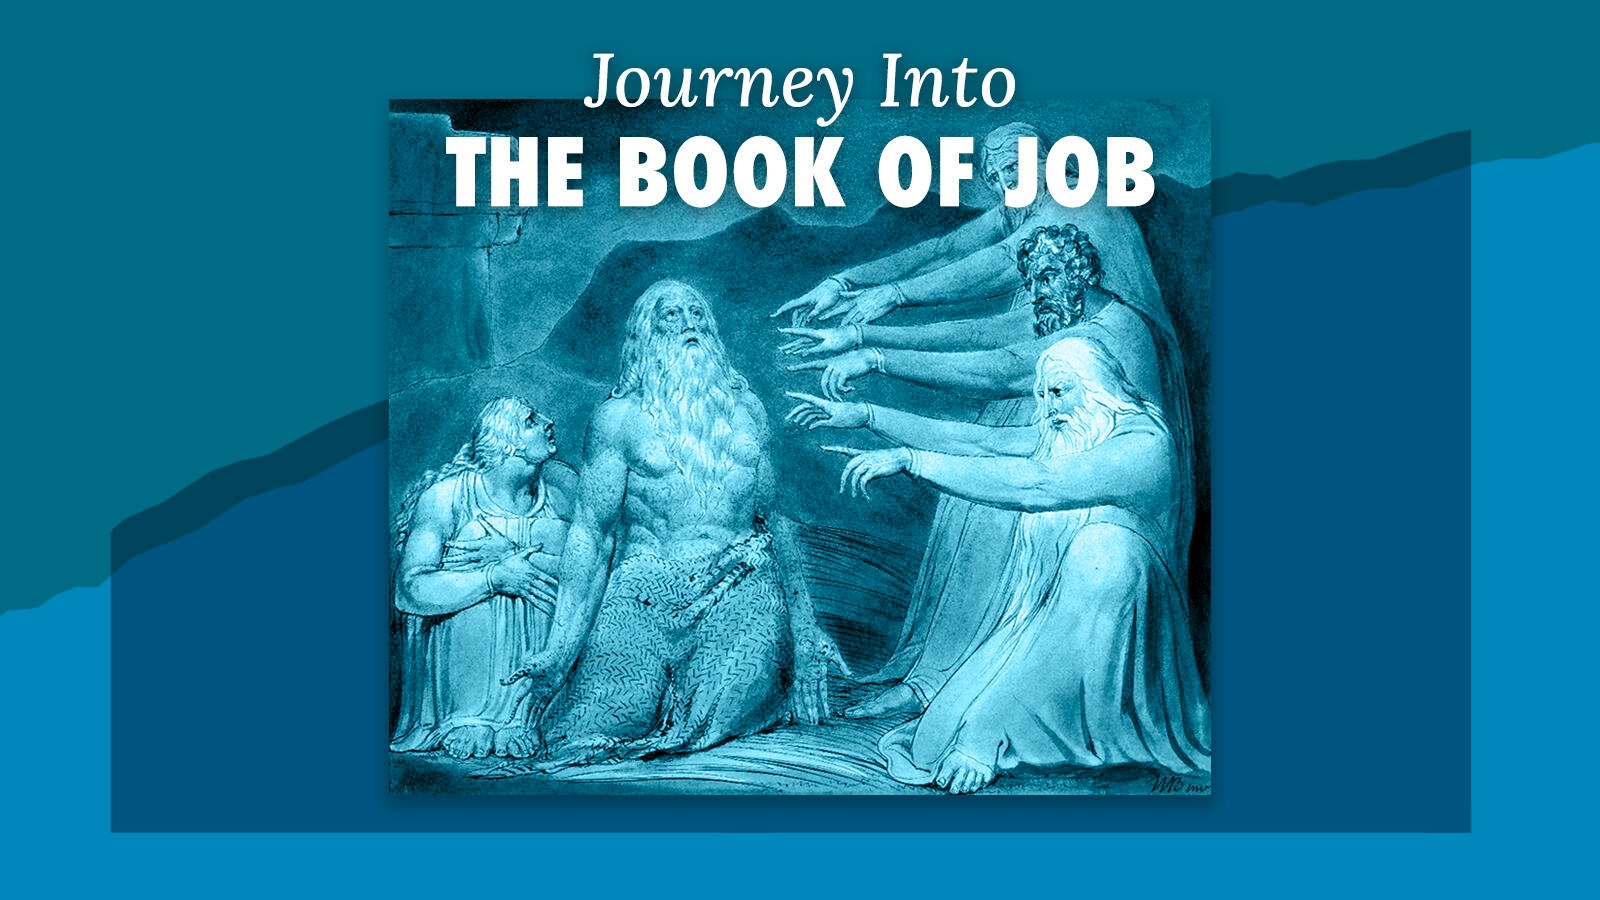 Journey into the Book of Job